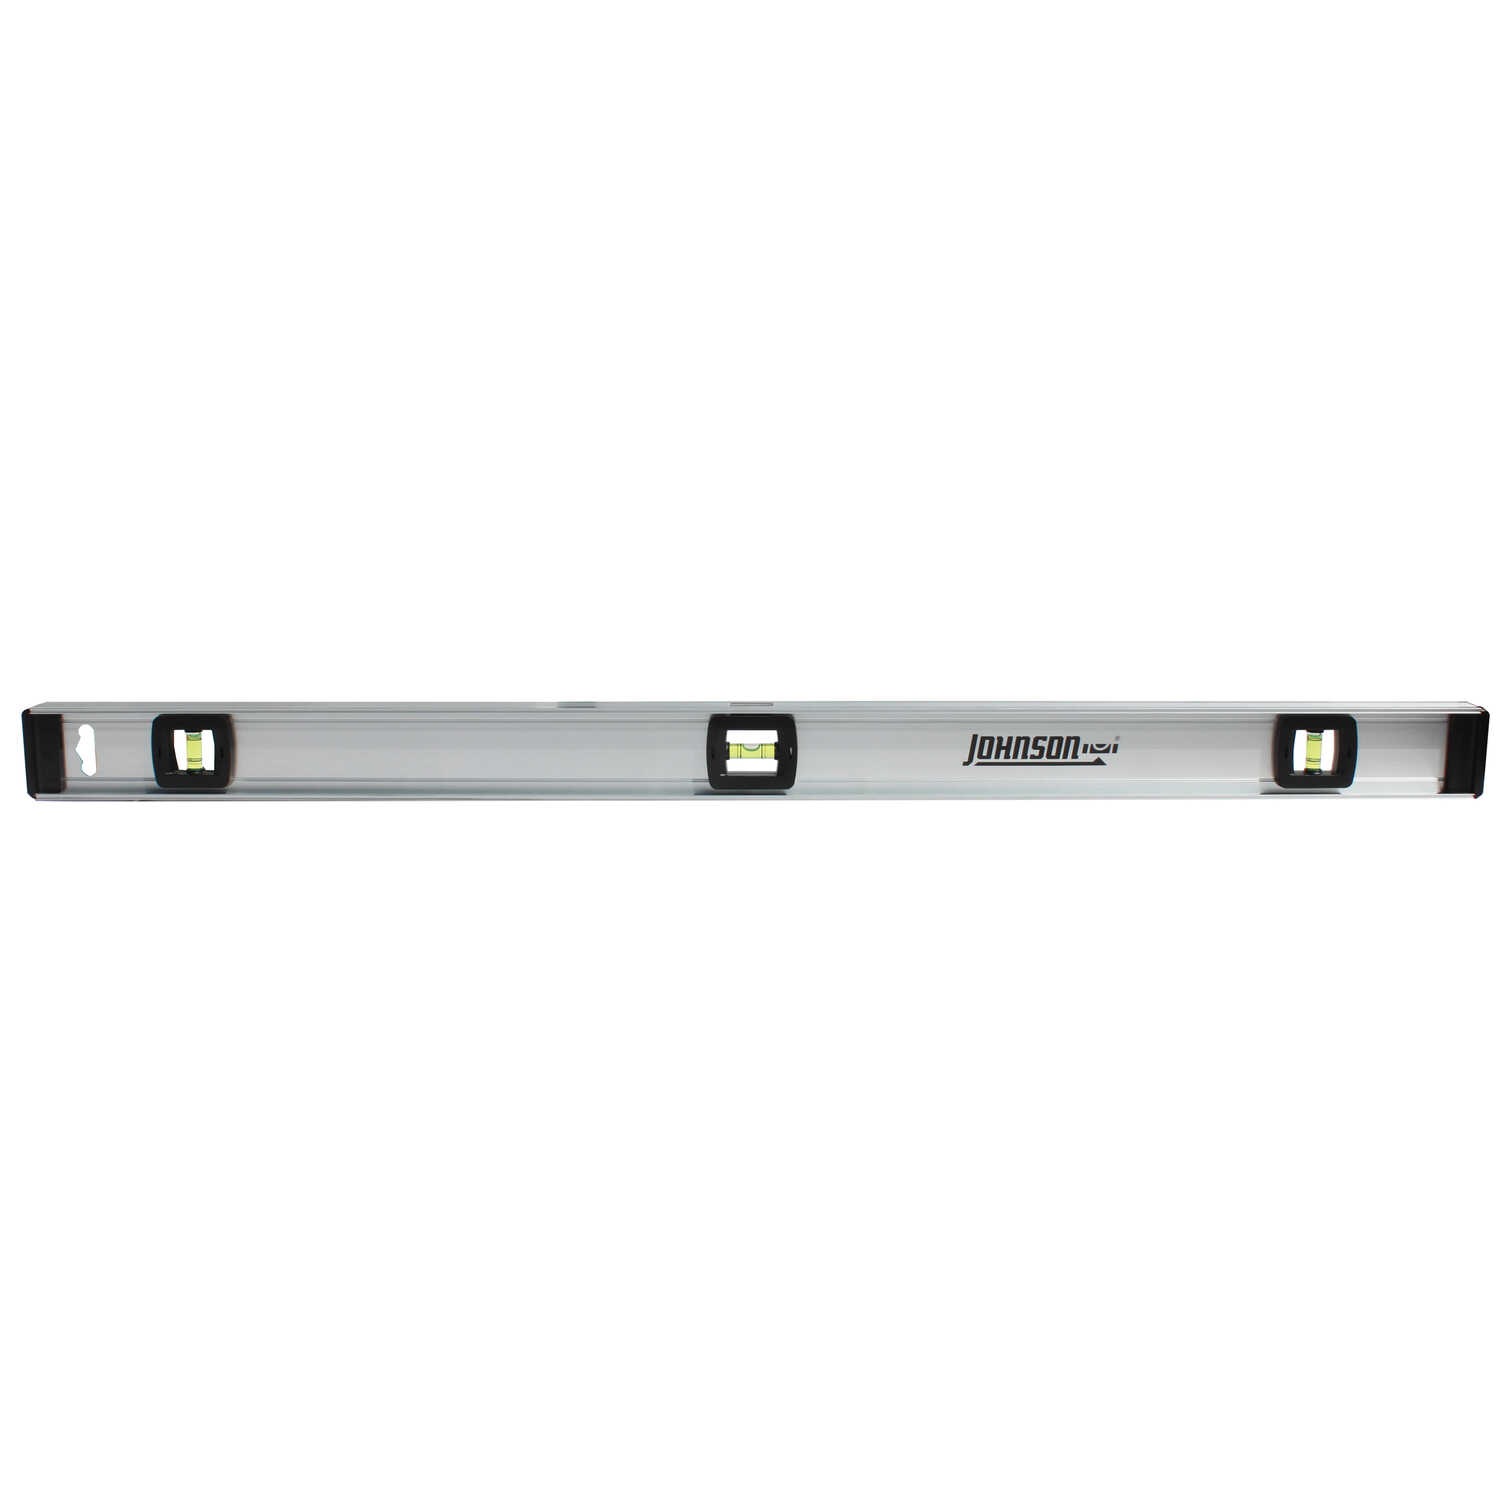 Johnson  36 in. Aluminum  I-Beam  Level  3 vial